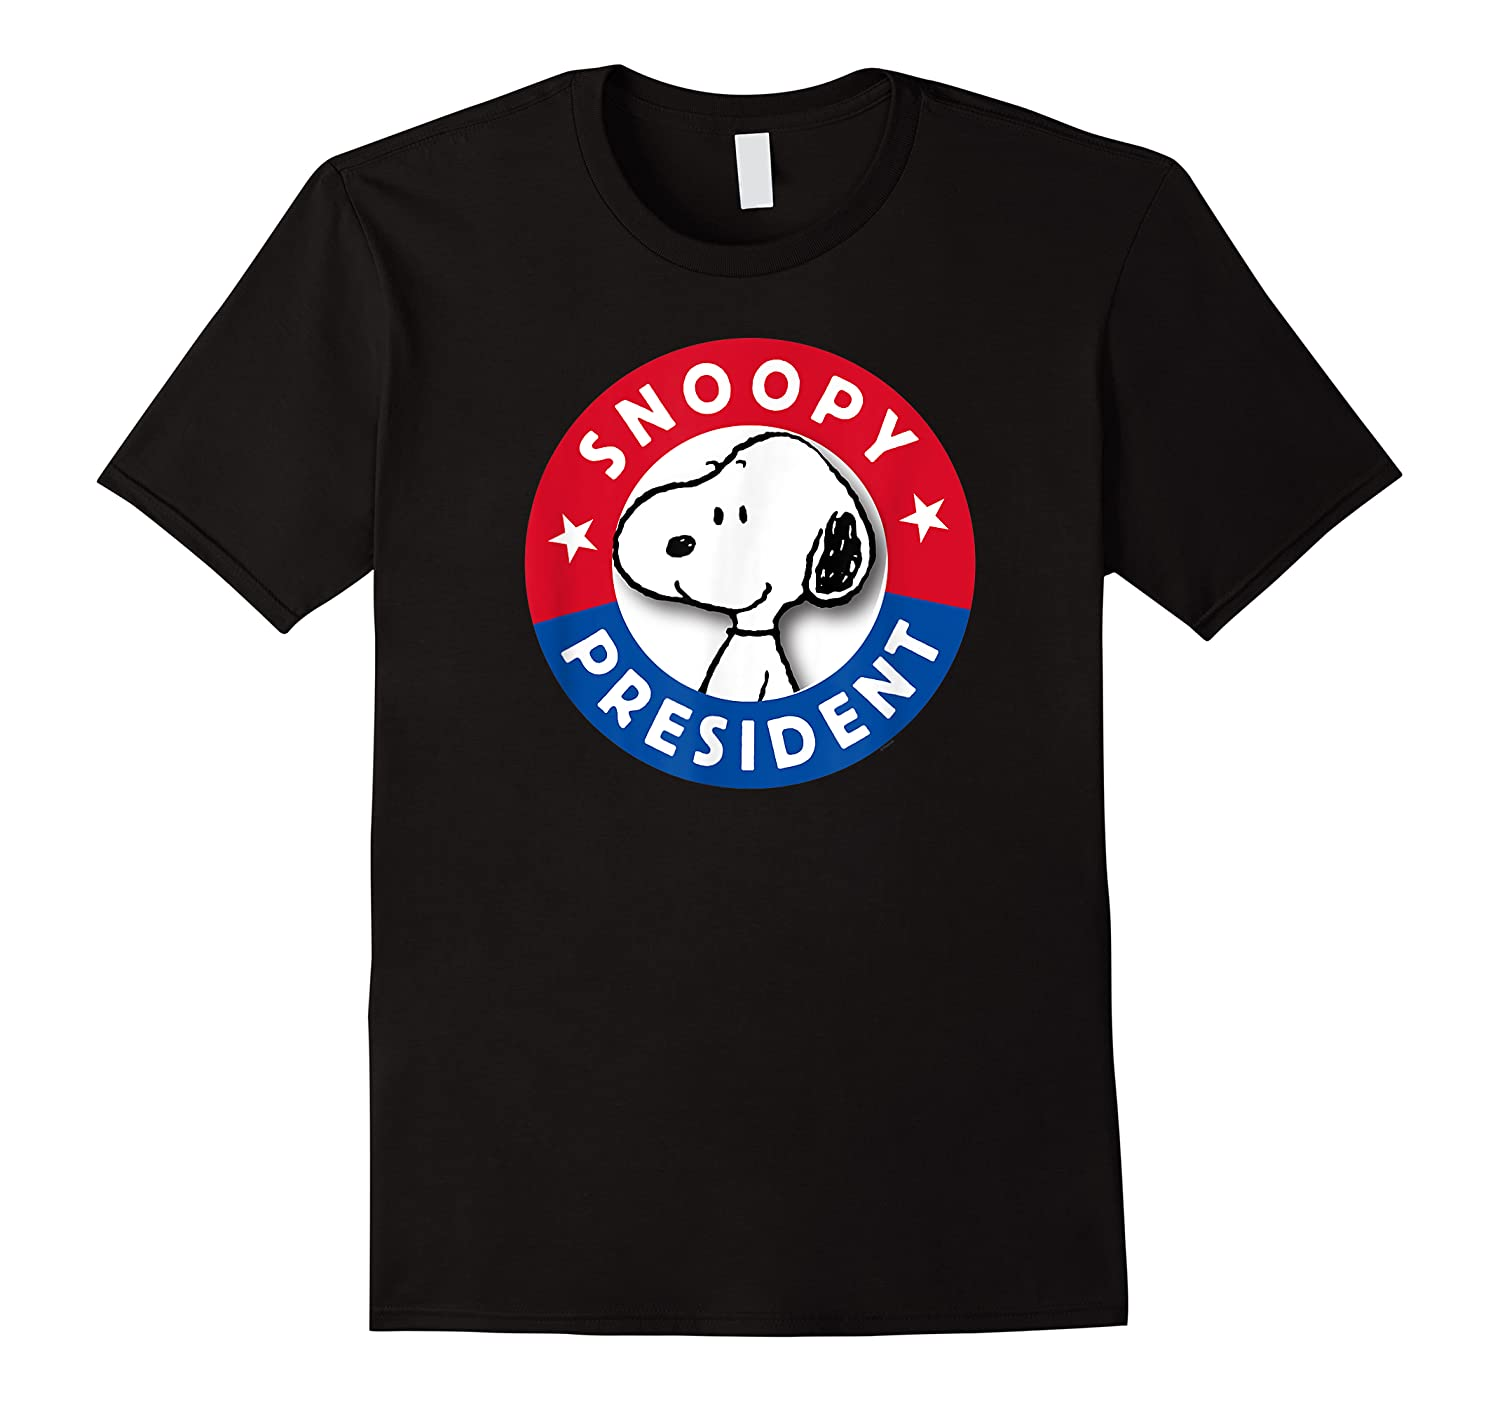 Peanuts Snoopy For President Shirts